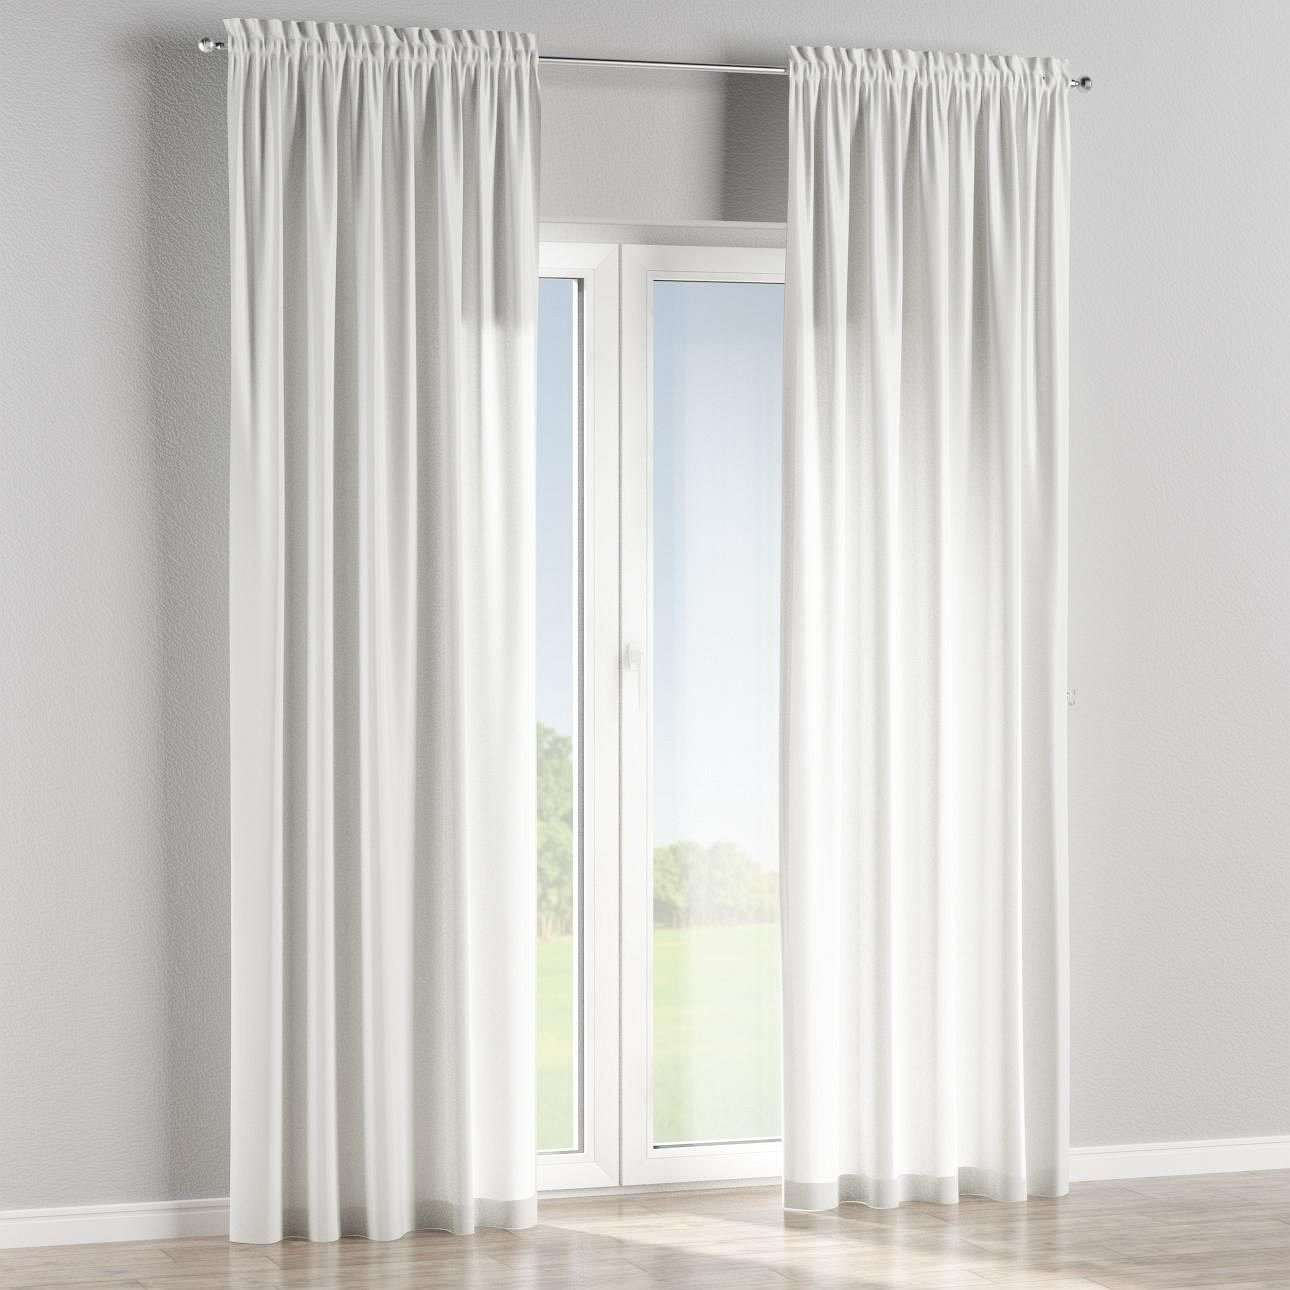 Slot and frill lined curtains in collection Norge, fabric: 140-92